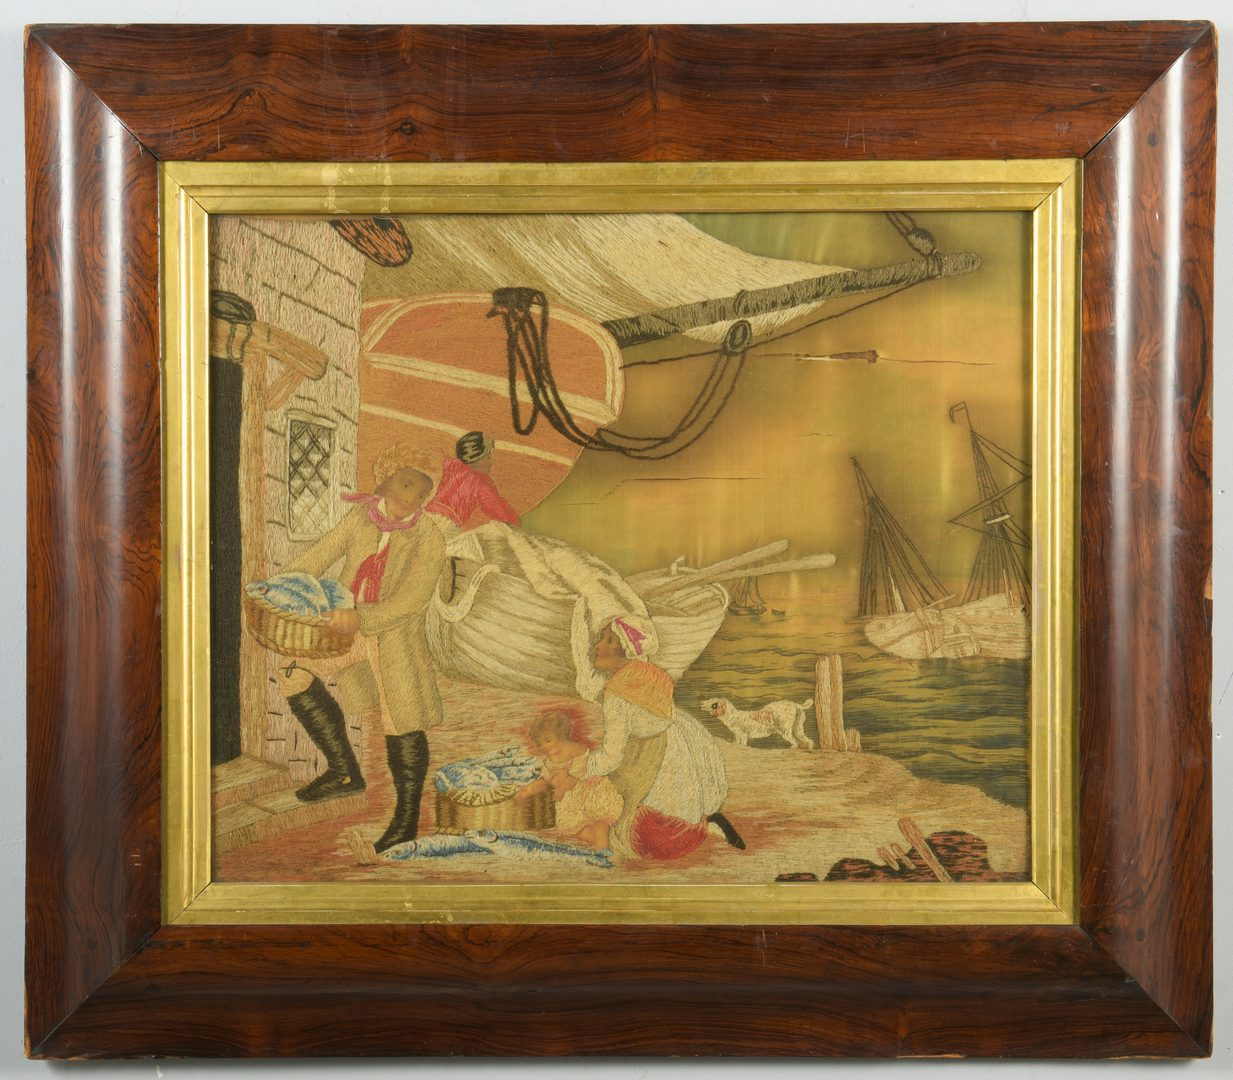 Lot 121: English Marine Embroidery, Seaport Scene